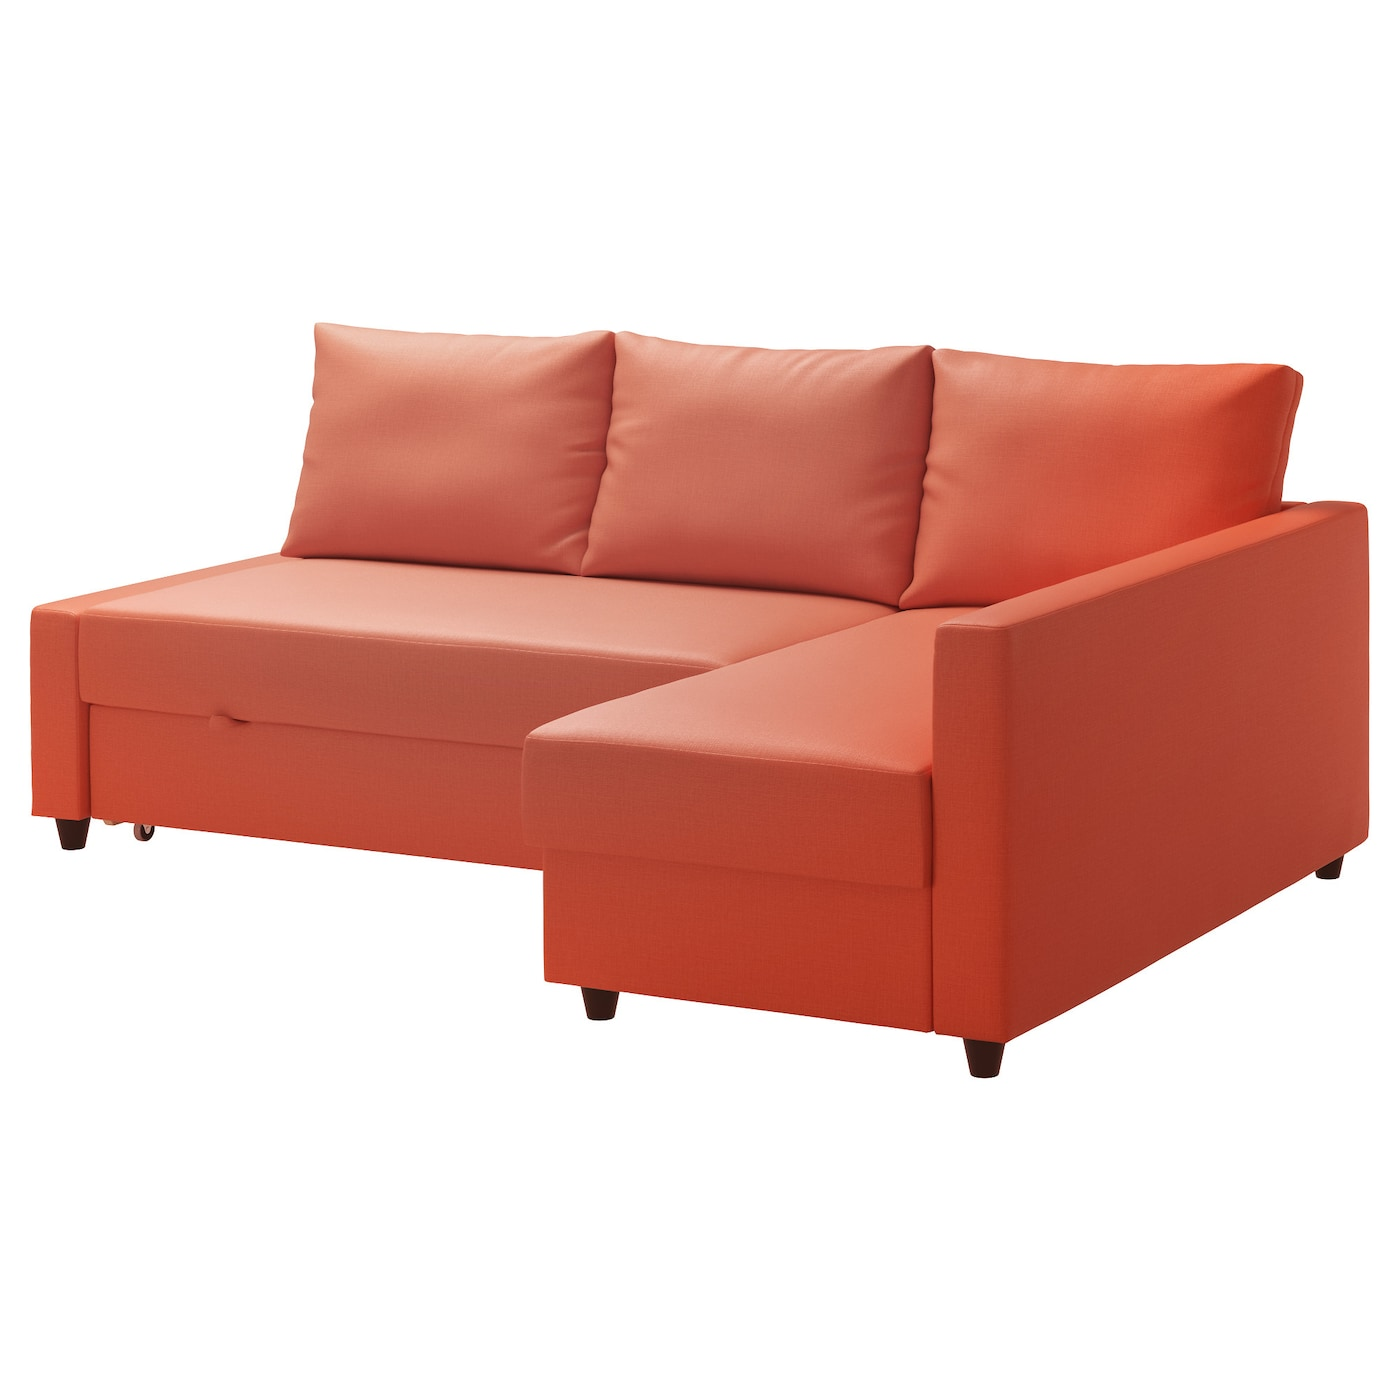 friheten corner sofa bed with storage skiftebo dark orange ikea. Black Bedroom Furniture Sets. Home Design Ideas